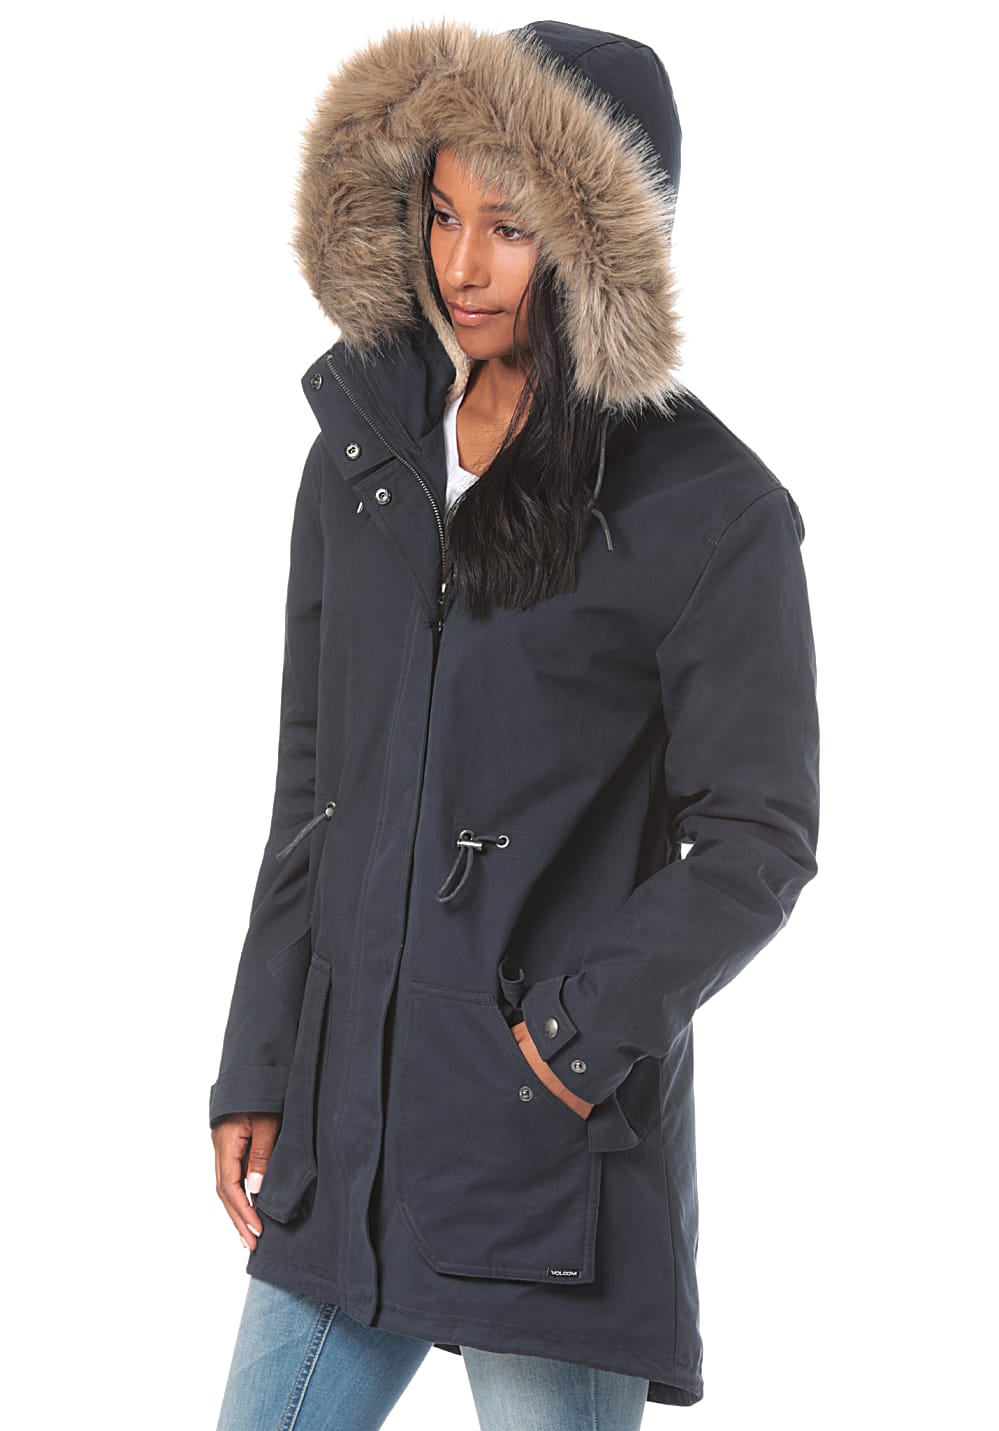 Is Taille Manteau More Women's Volcom Noir Parka L Less gn6FEwAz